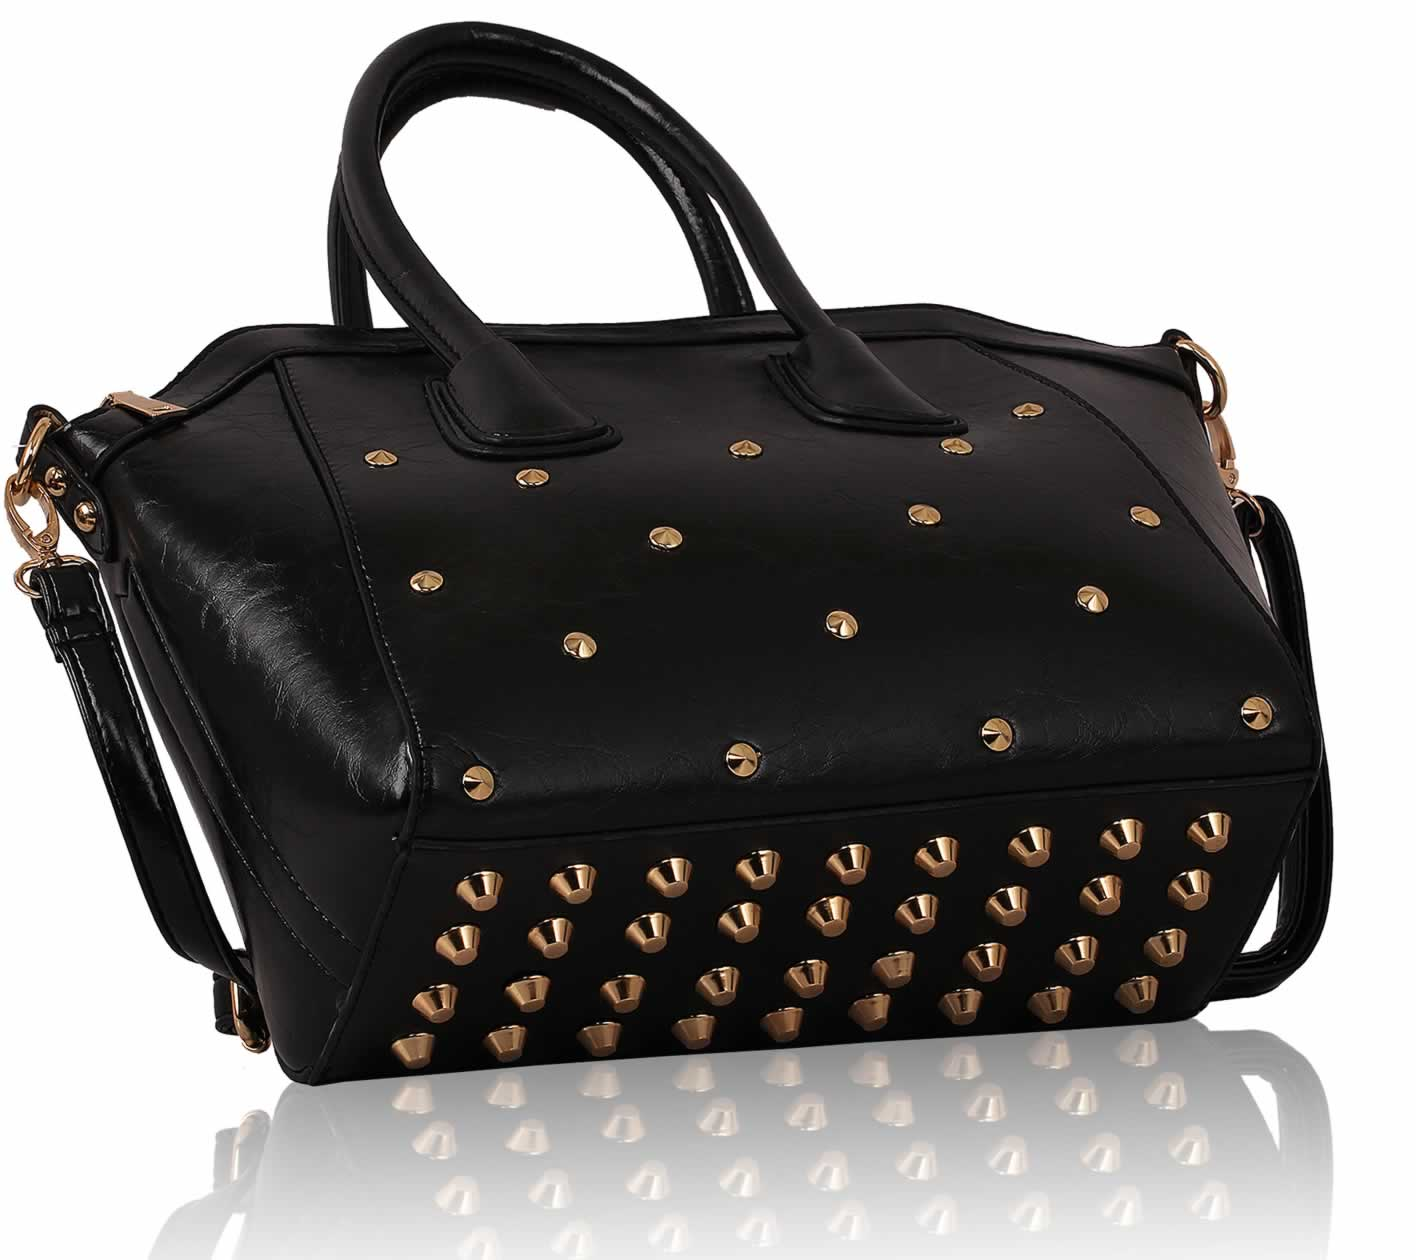 I know where this is from but please let me know when It goes back up on the website! #alex #alexanderwang #rockie #alexanderwangrockie #gold #goldstuds #goldstudded #bottom #black #leather #purse #bag #satchel #brandy #melville #brandymelville #knock #knockoff.